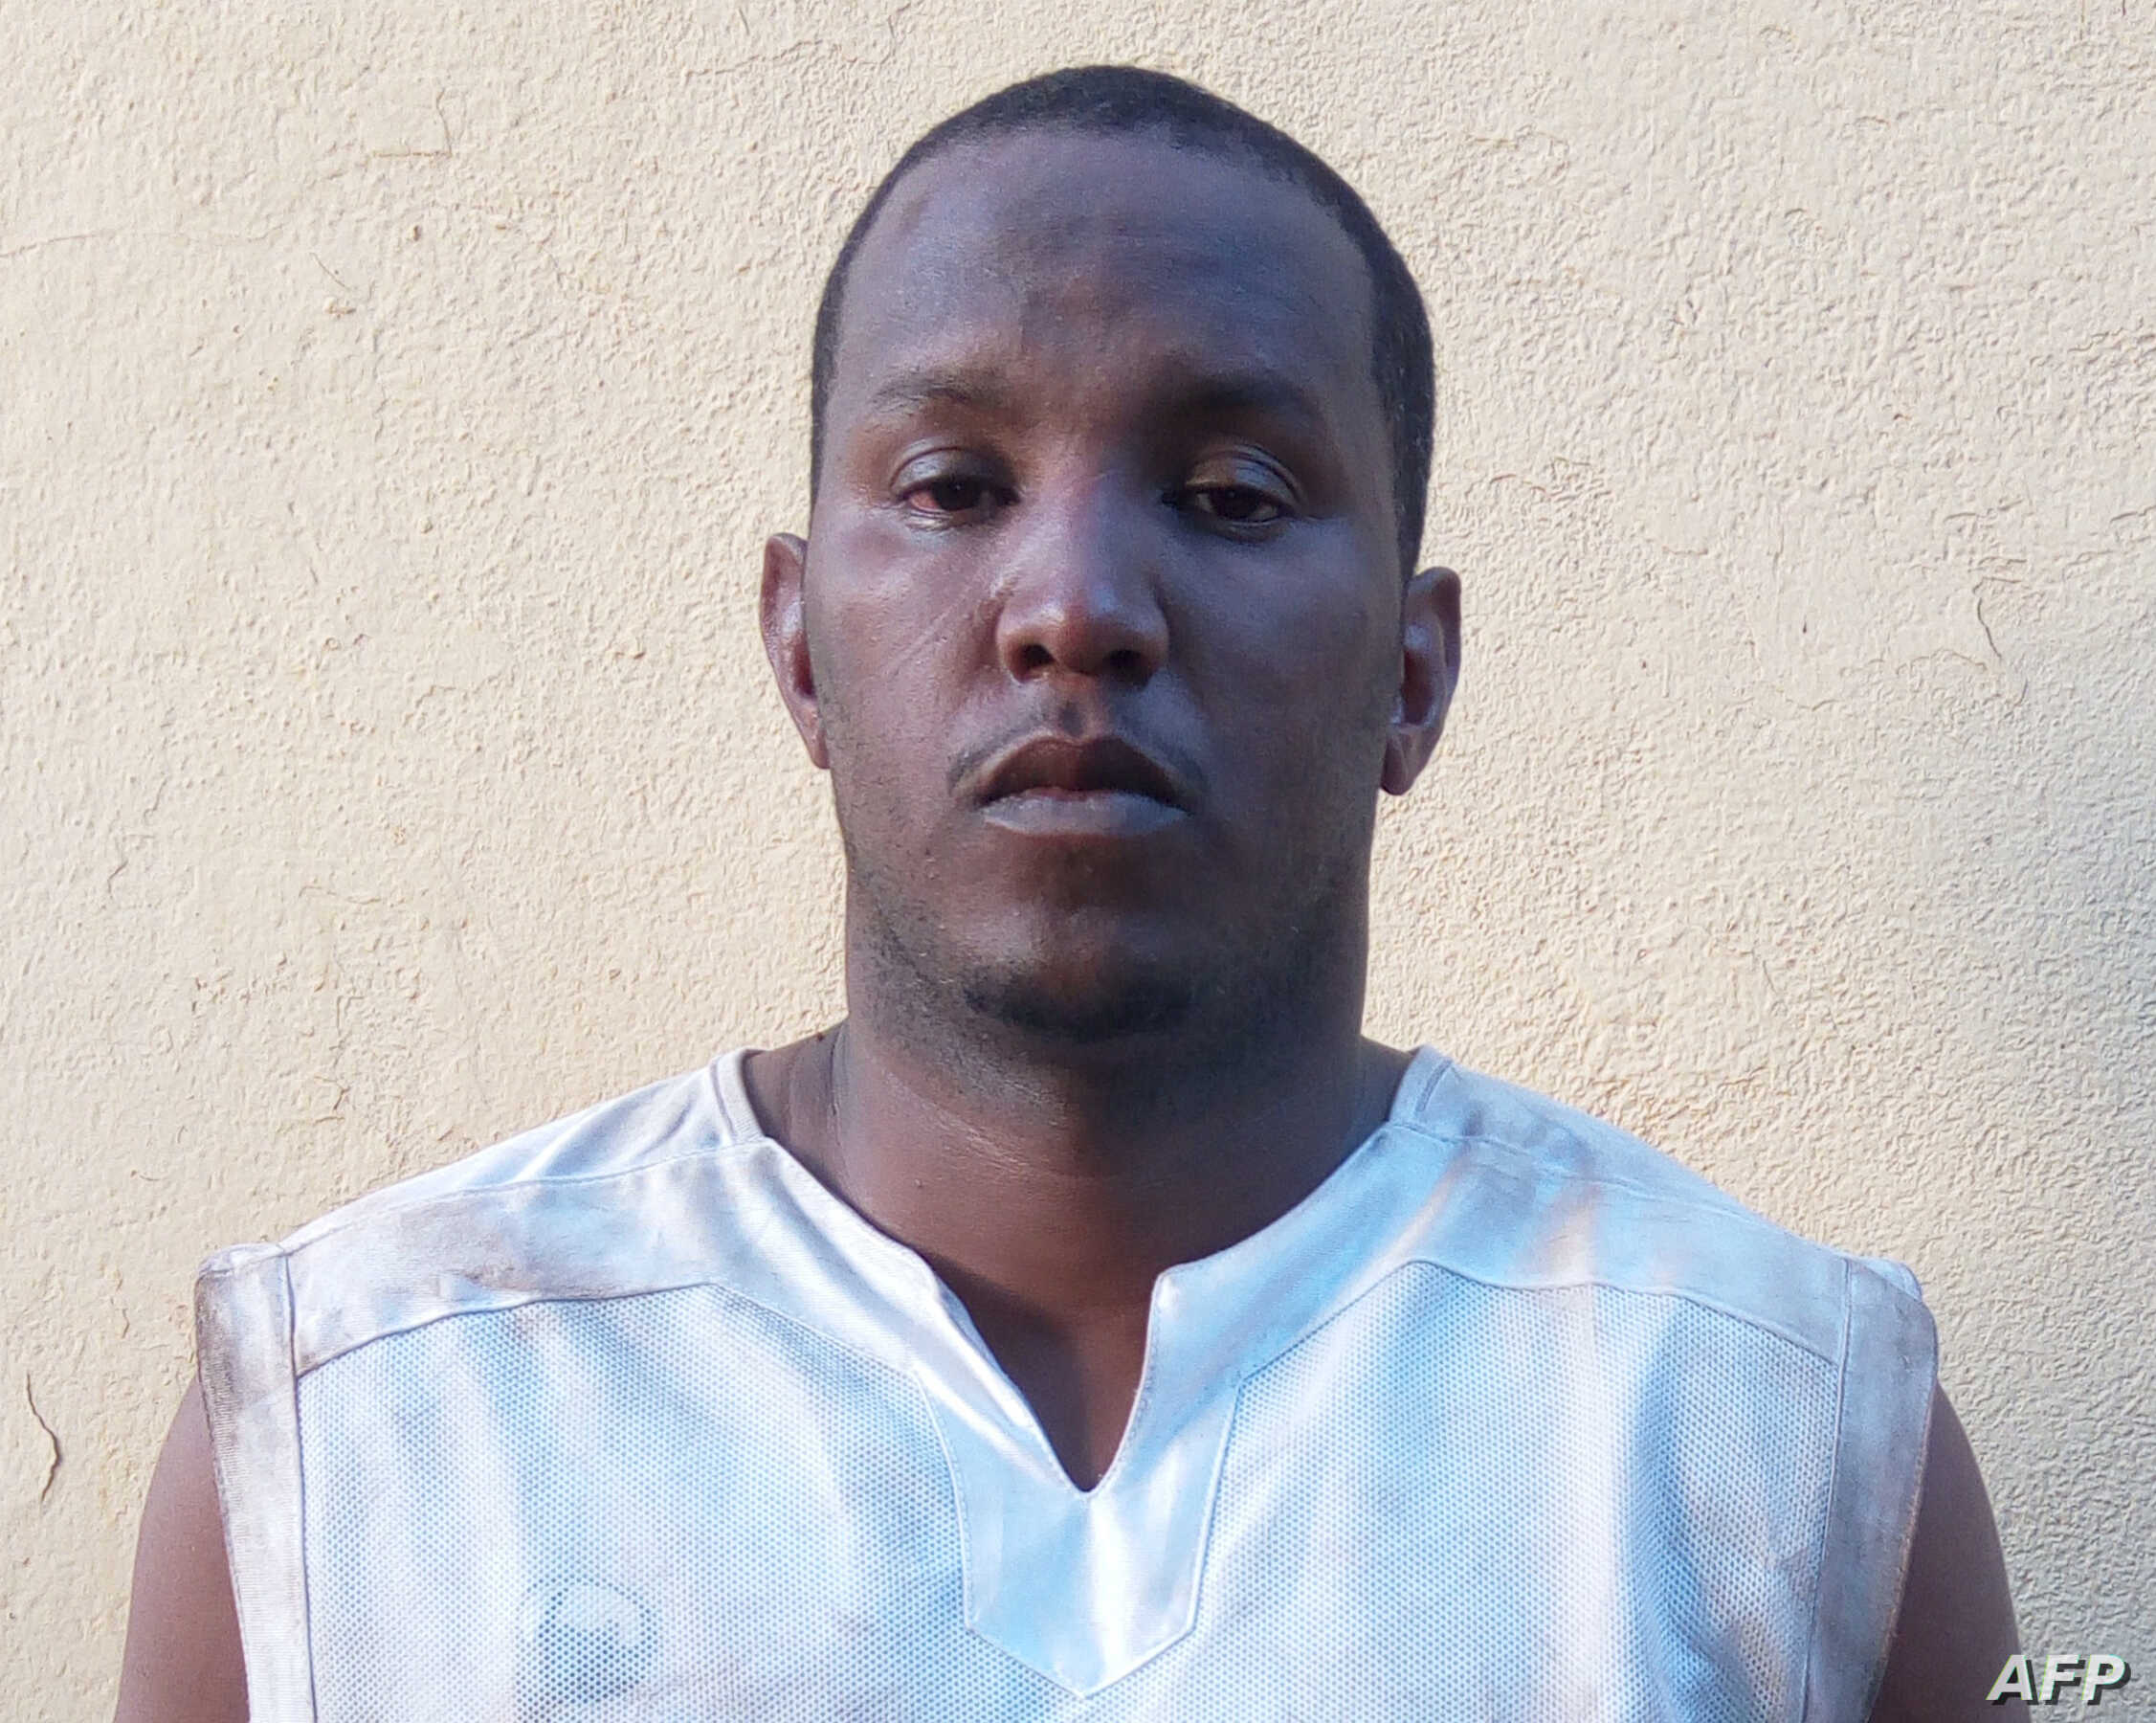 An image obtained by AFP on April 21, 2016 in Bamako shows Fawaz Ould Ahmeida from Mauritania, suspected of planning and carrying out a string of deadly attacks on sites popular with foreigners in Mali in 2015, after his arrest on the same day in a s